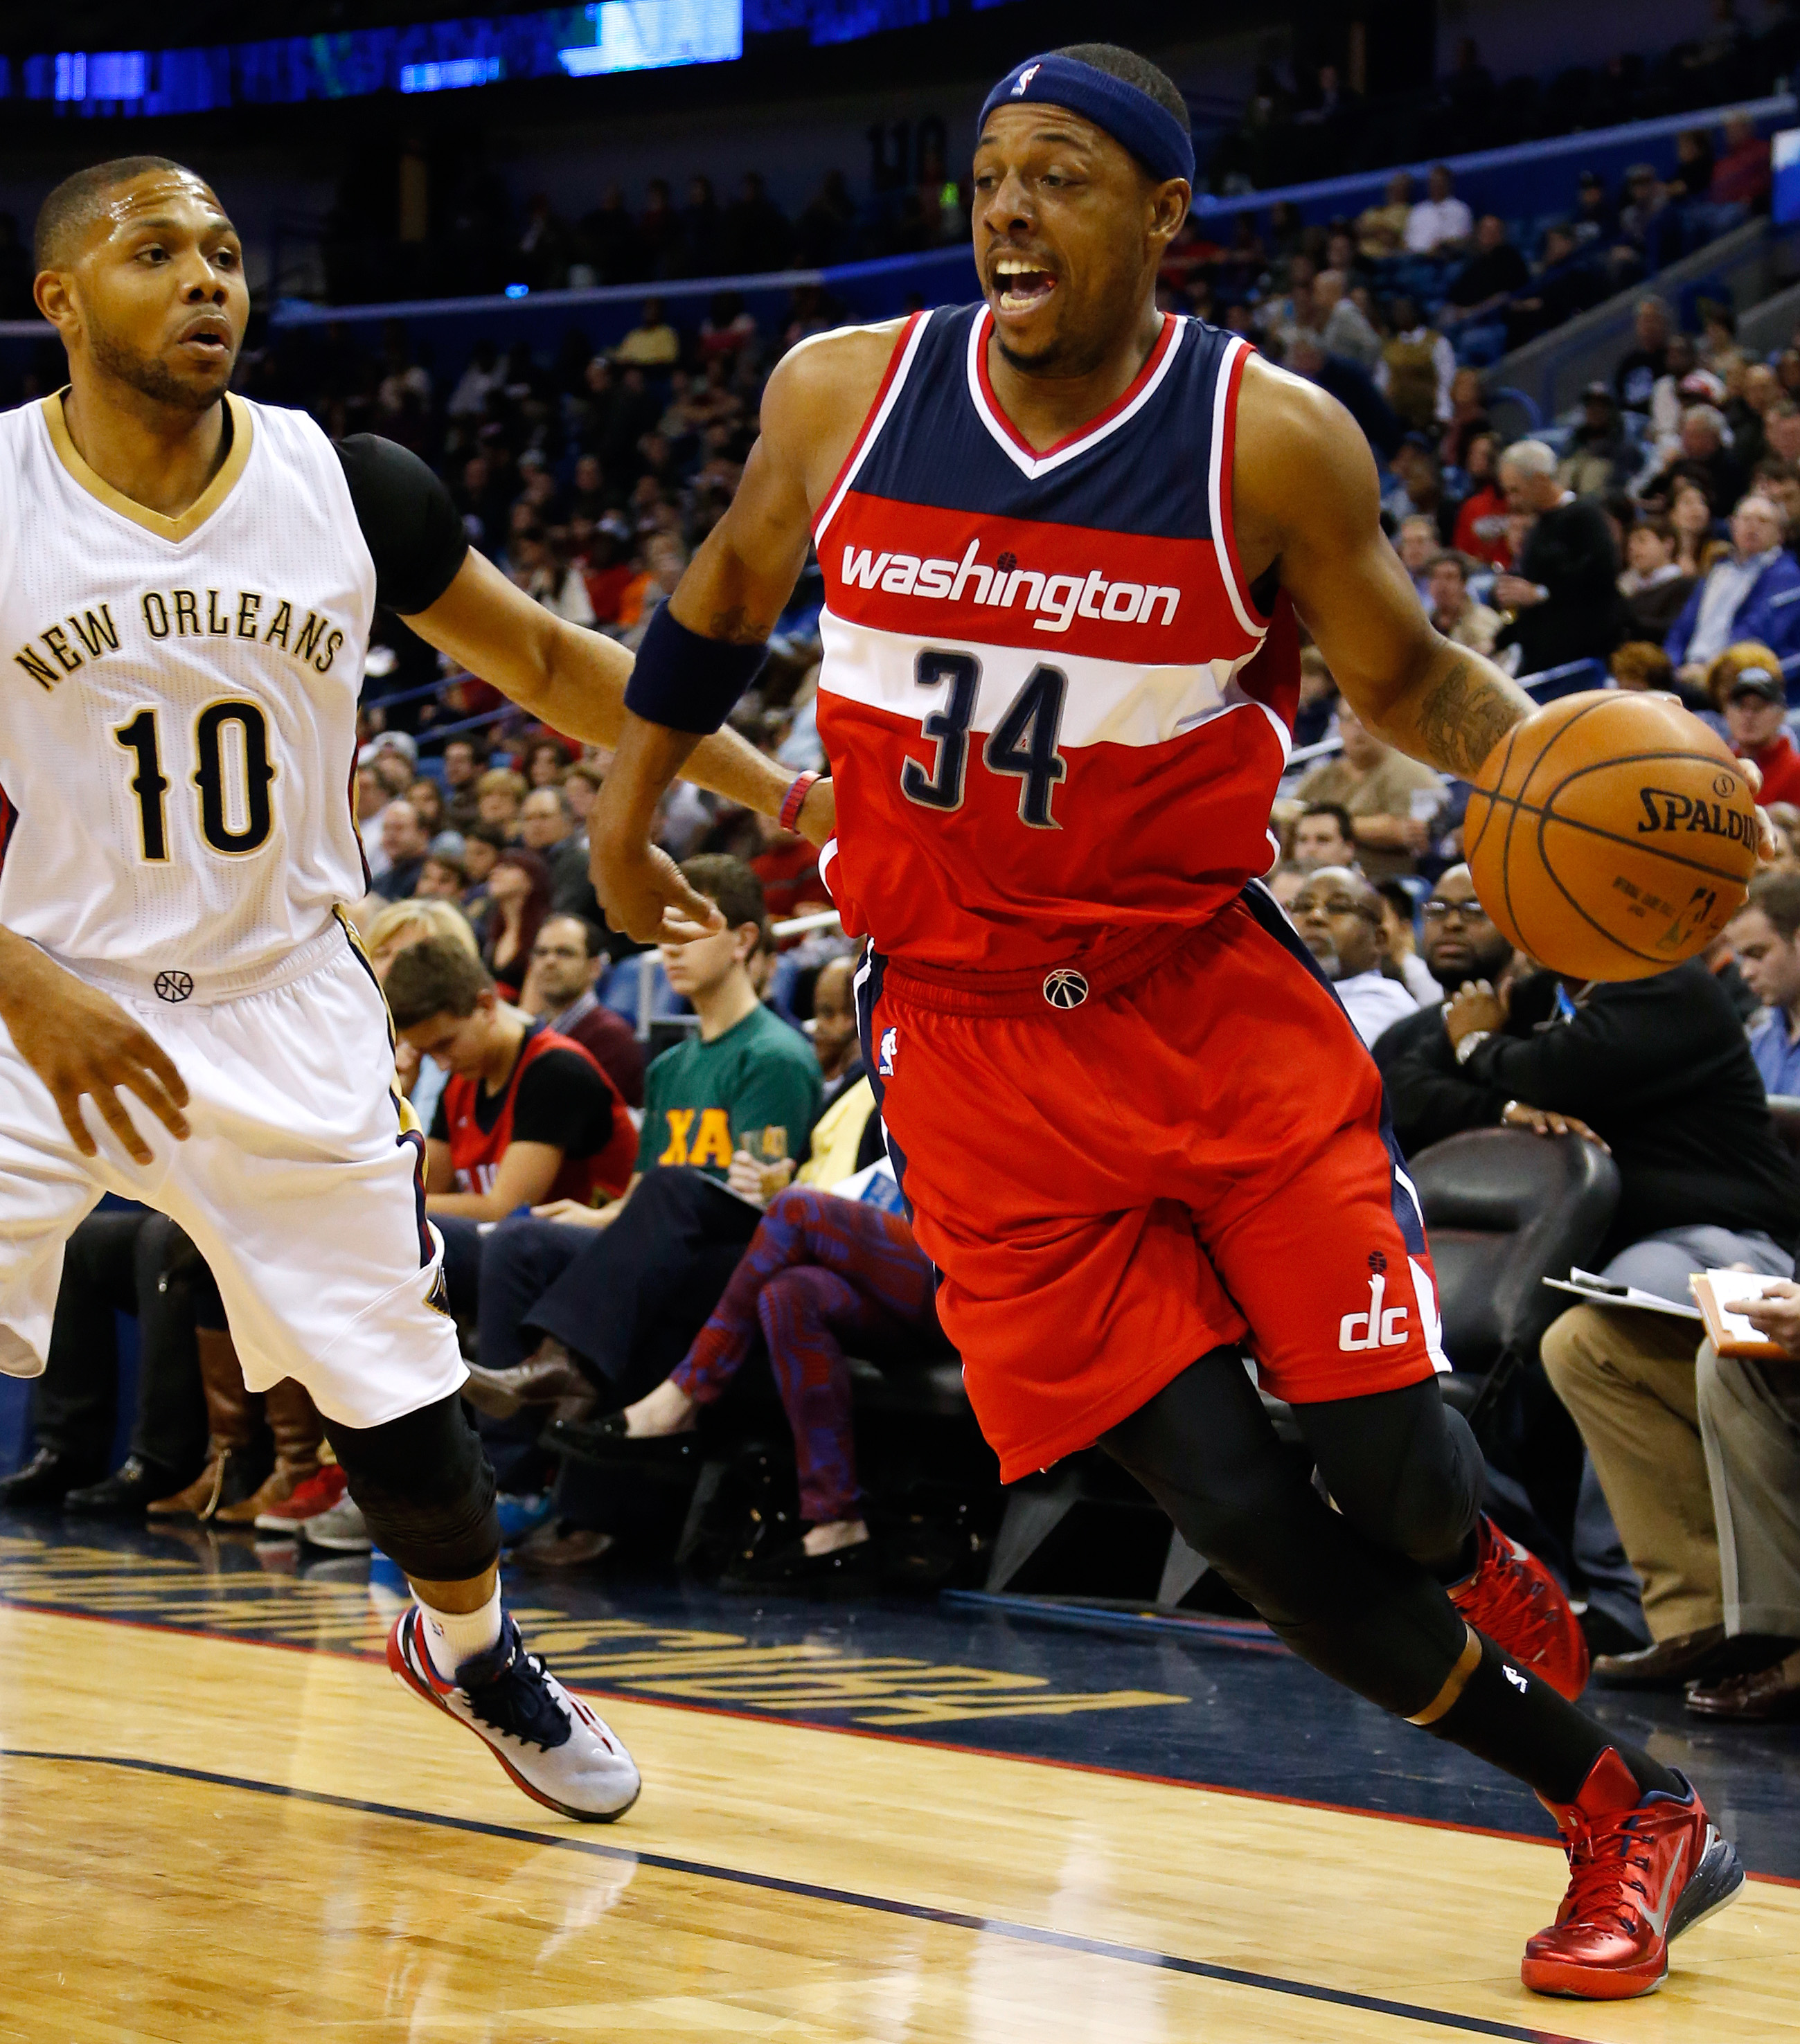 Wizards snap losing streak with 92-85 win over Pelicans